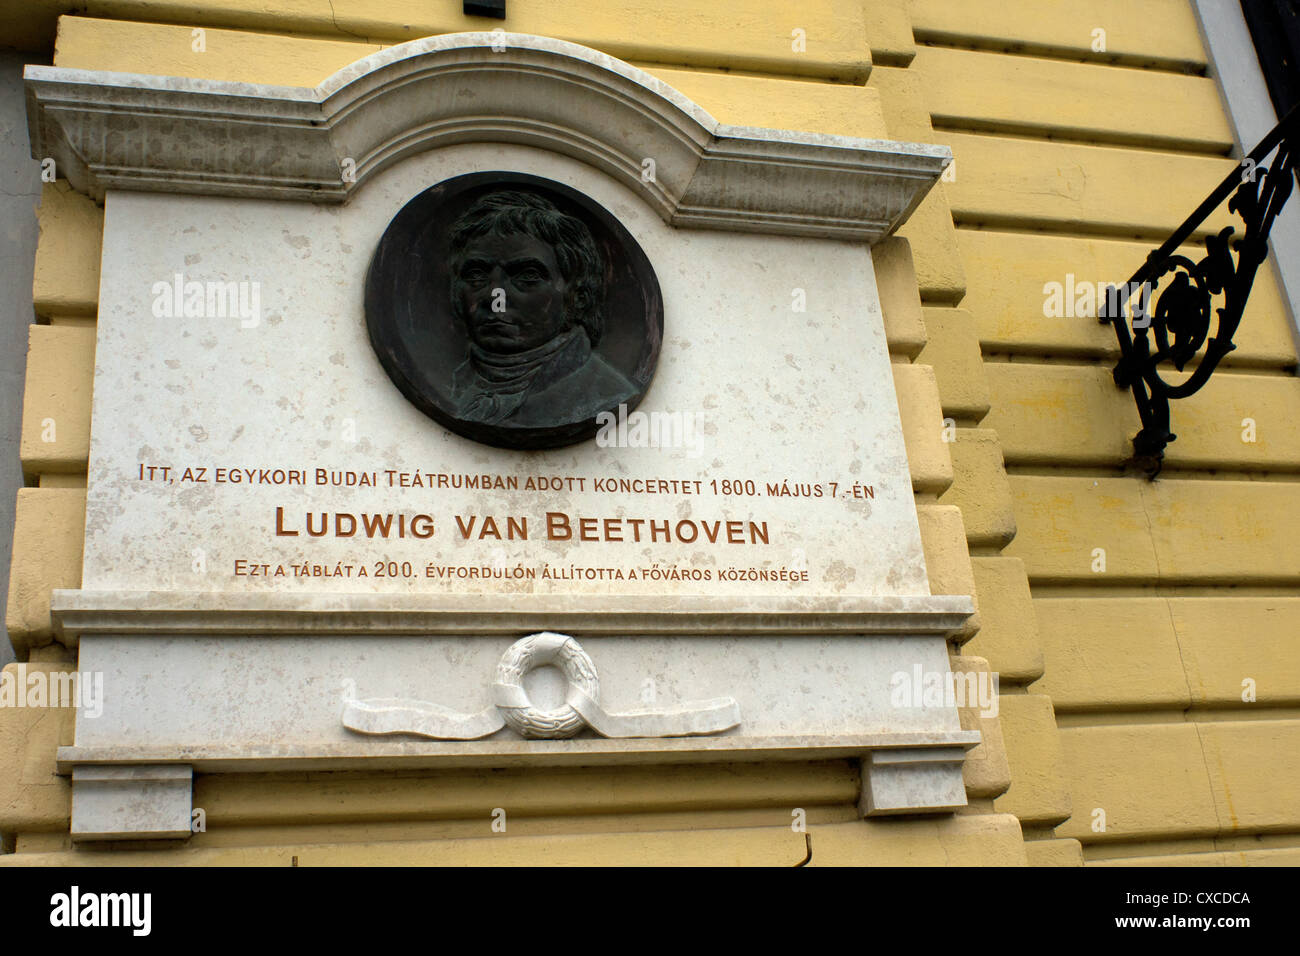 Plaque Ludwig Beethoven recording the date Ludwig Van Beethoven performed in Budapest  May 1800 - Stock Image